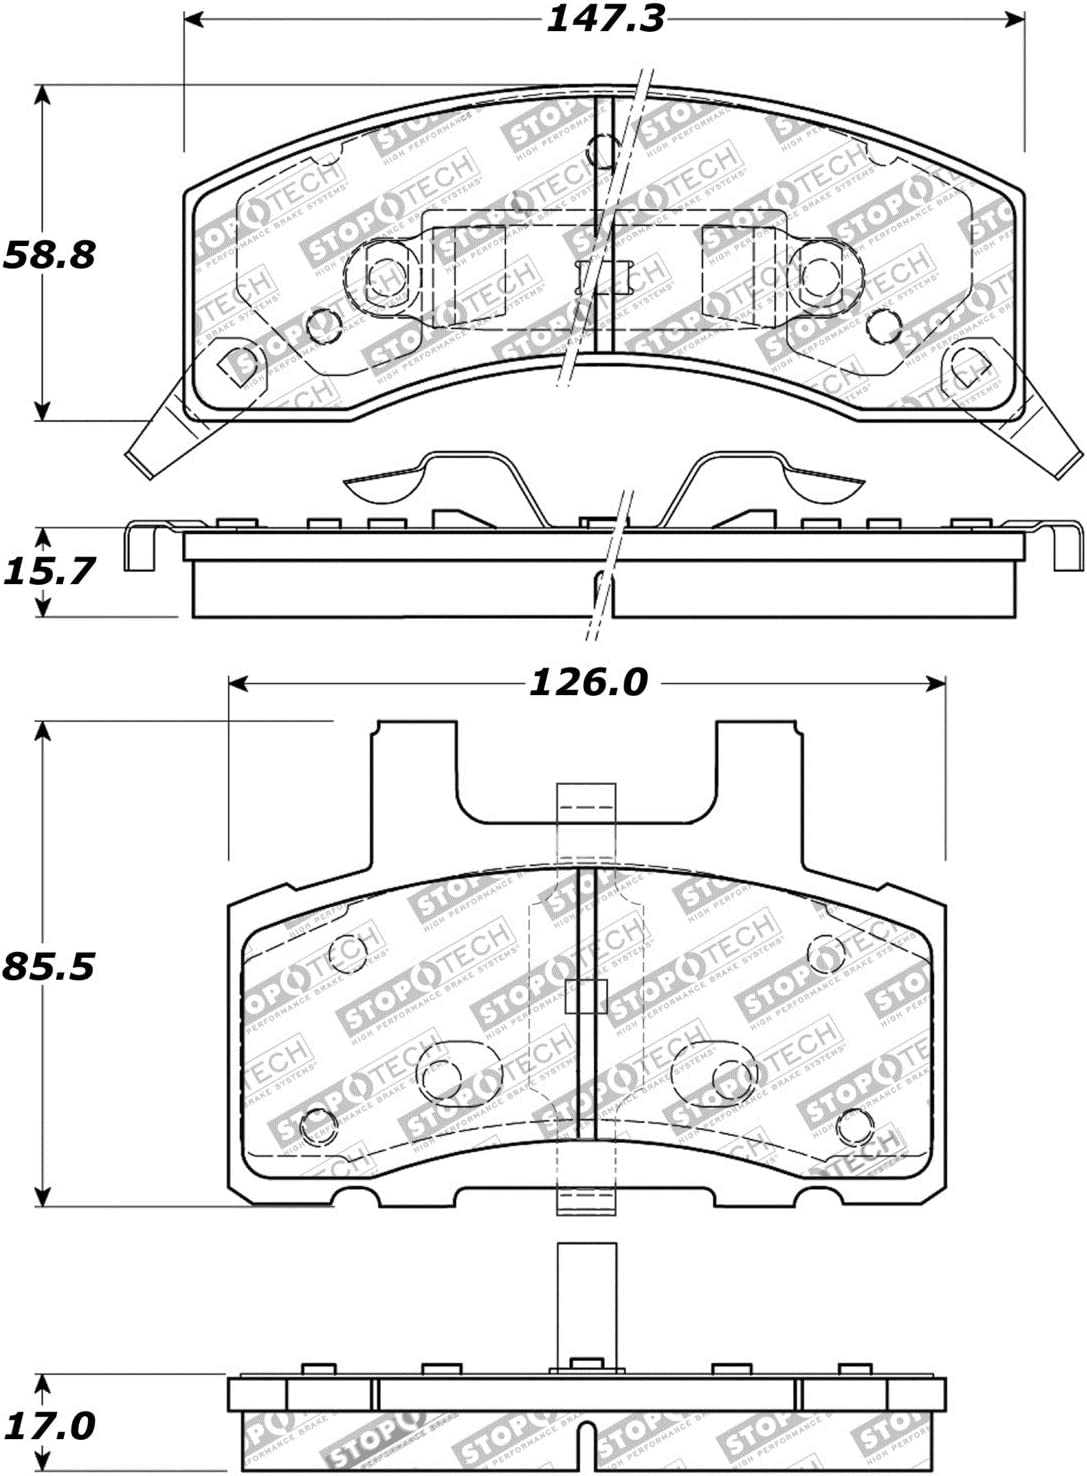 StopTech 309.03700 Street Performance Front Brake Pad